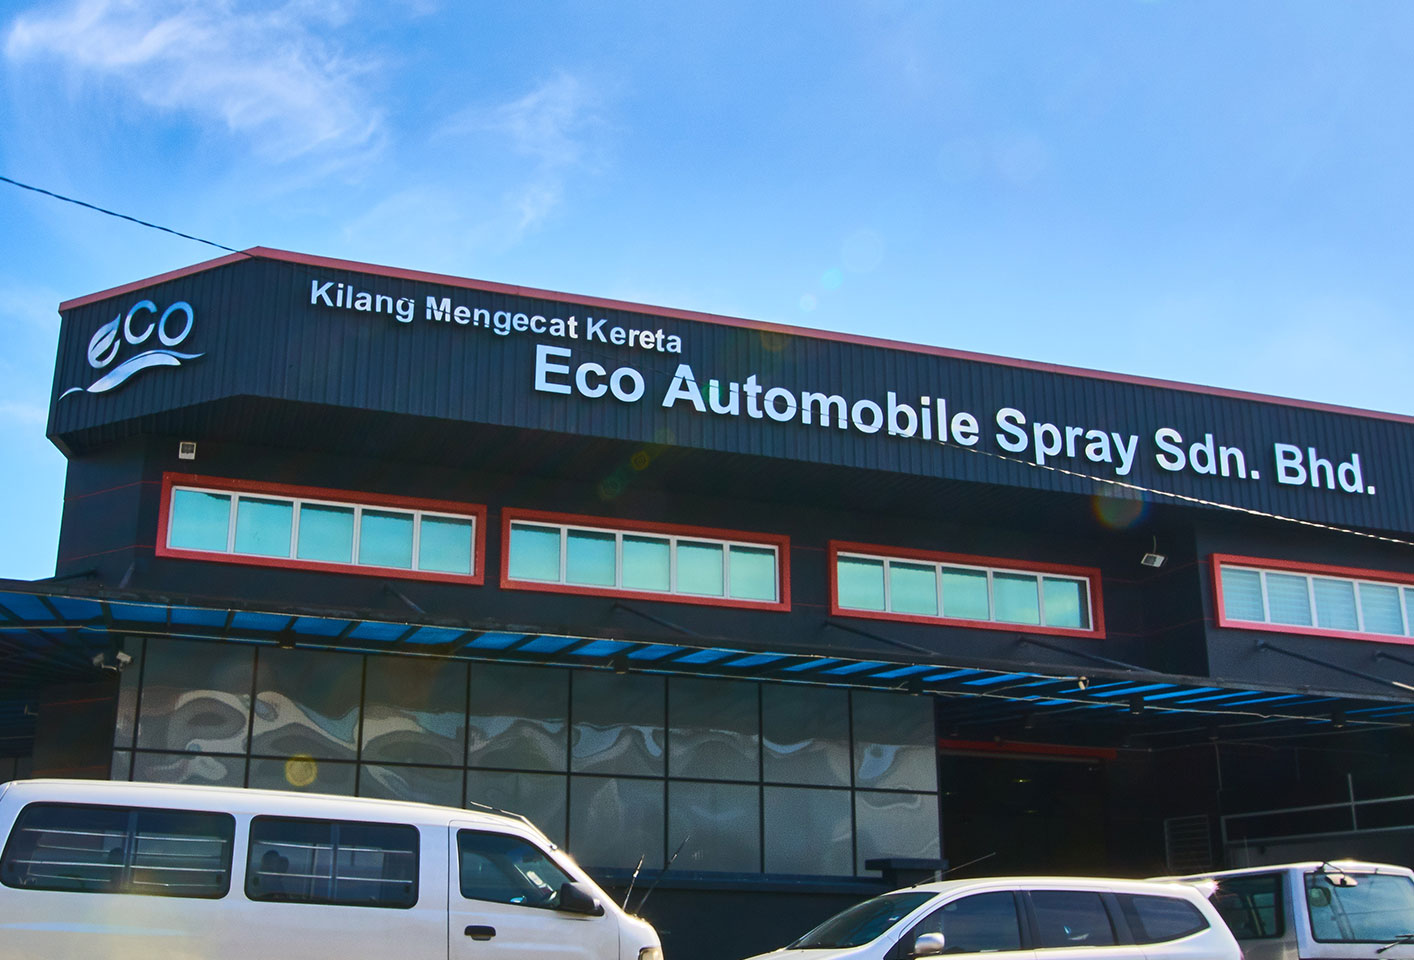 Leader in Poineering Eco-friendly painting system in johor bahru